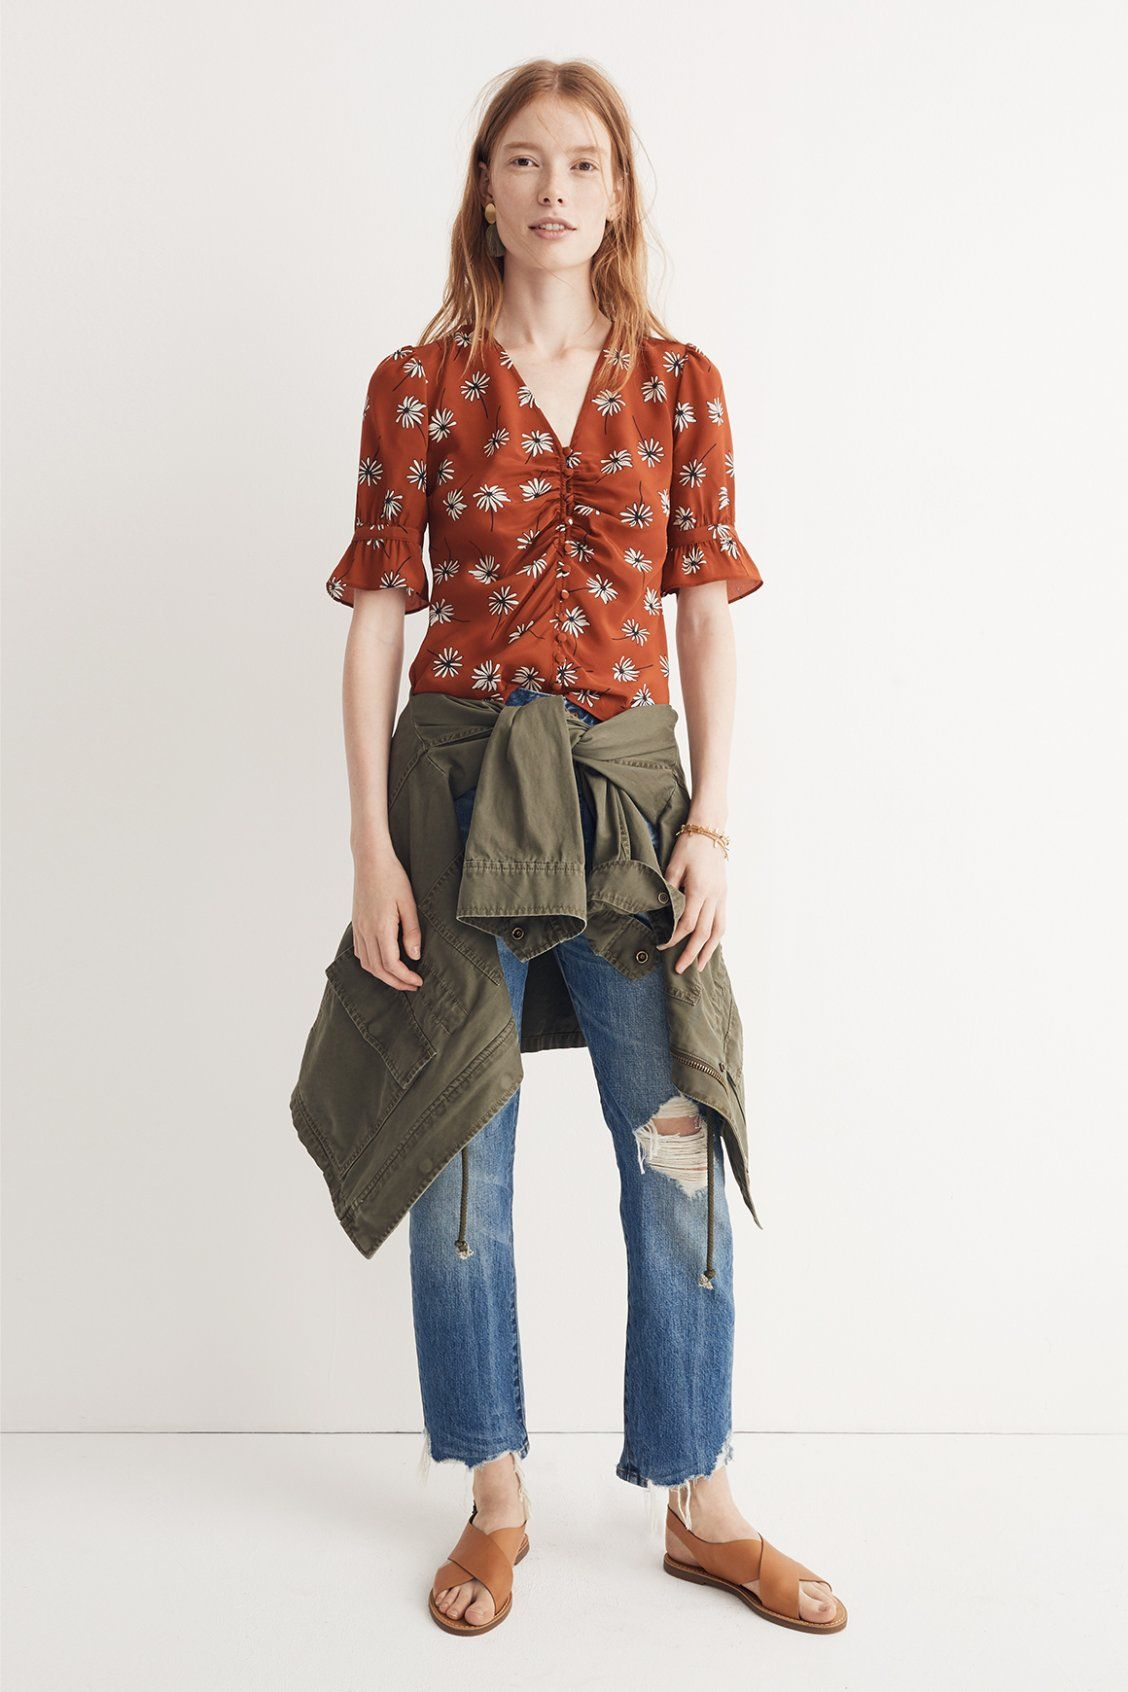 63c68ae29a madewell daylight top worn with the perfect summer jean  destructed ...